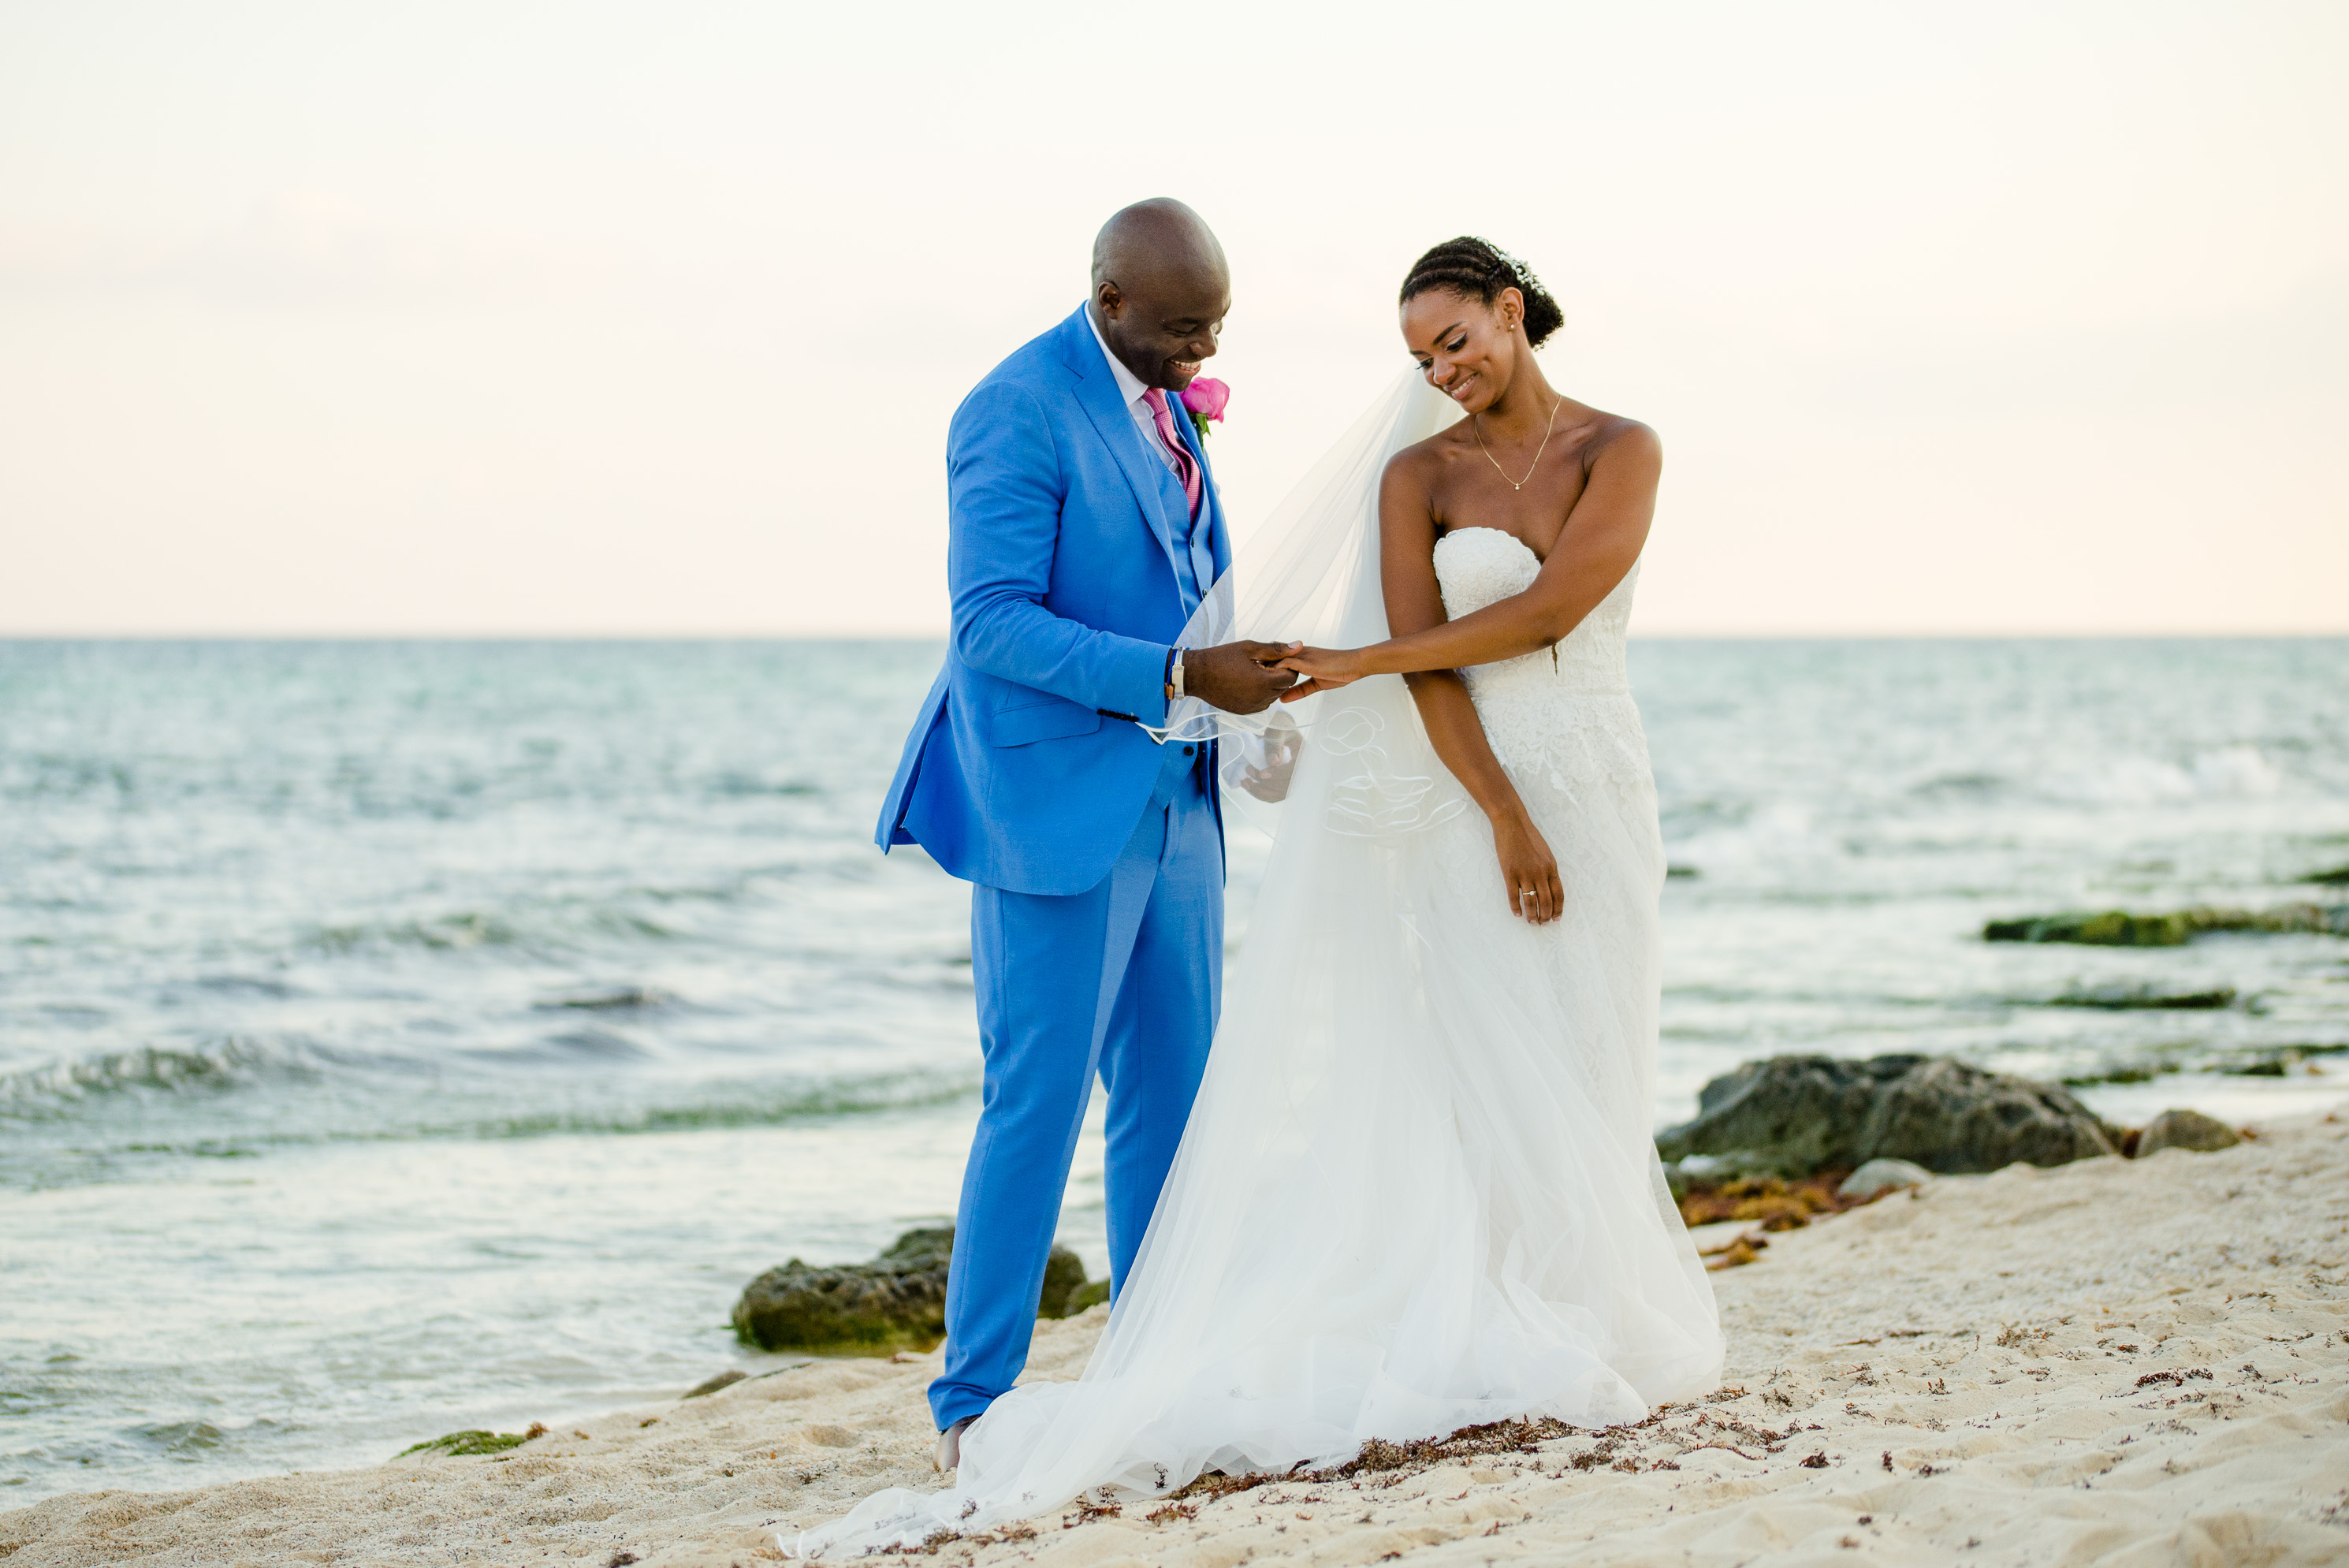 Colette + Xavier | Playa del Carmen, Mexico | The Fives Hotels And Residences